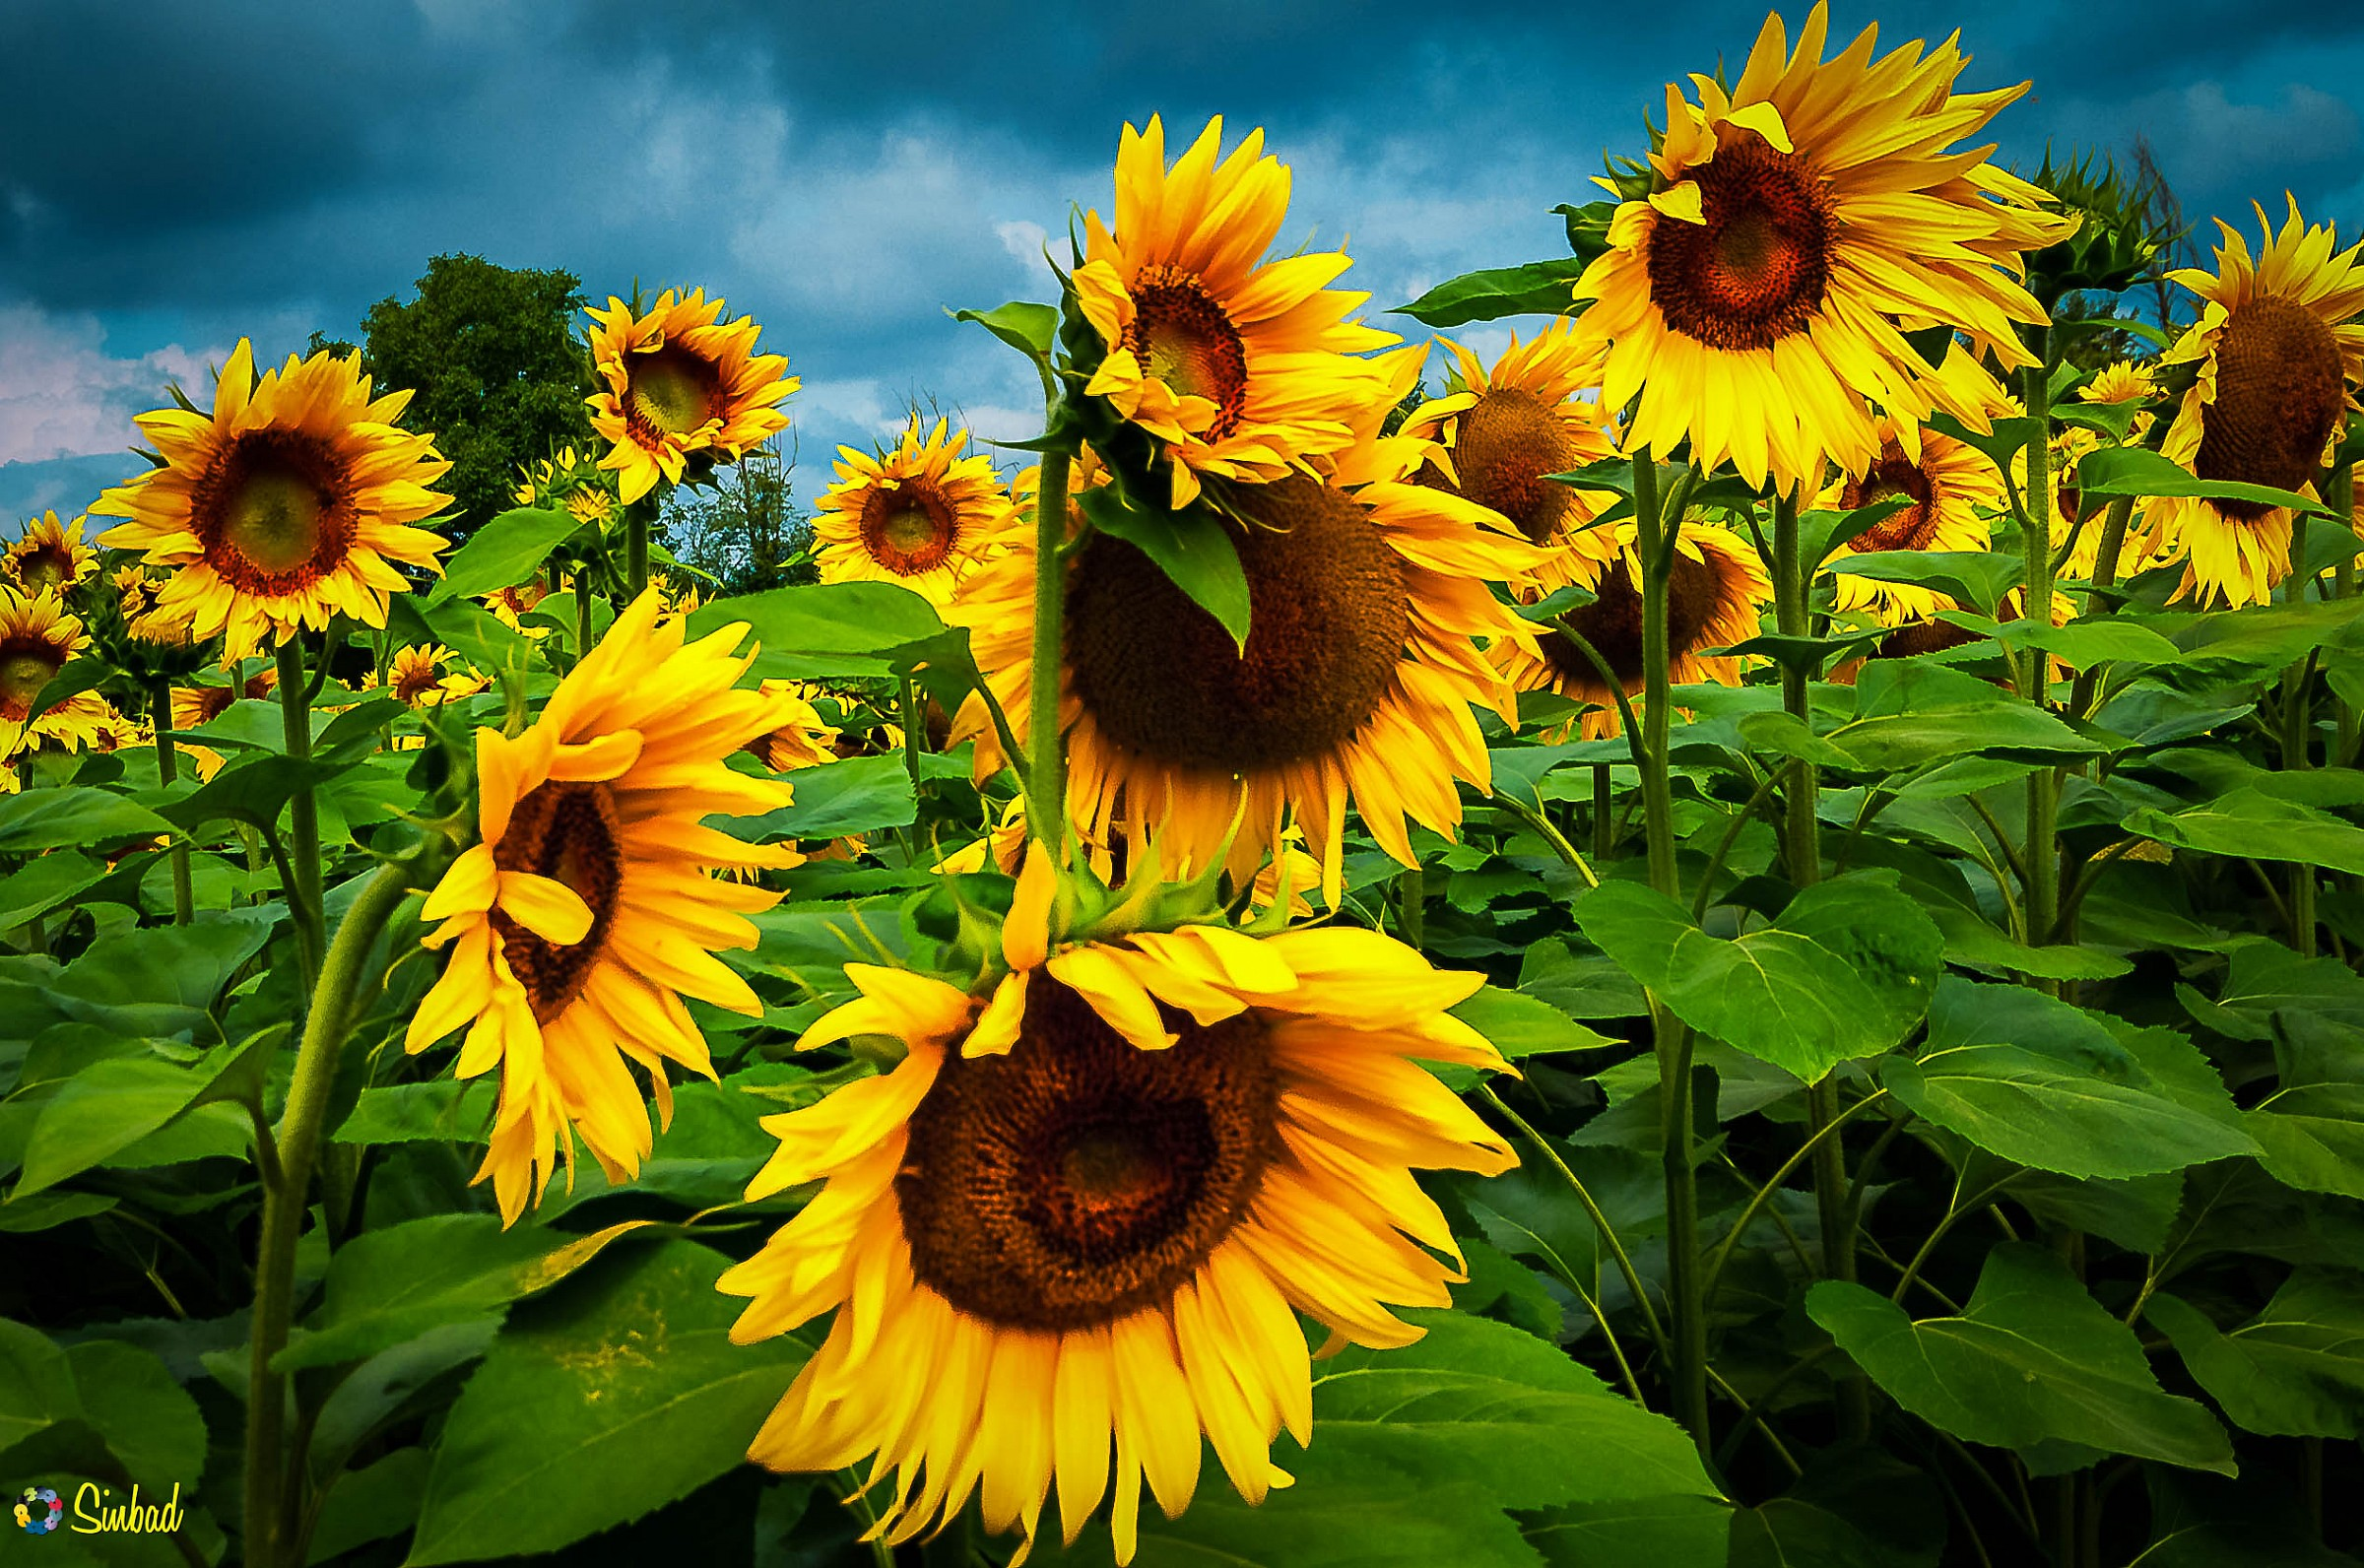 Sunflowers after a rainy day...